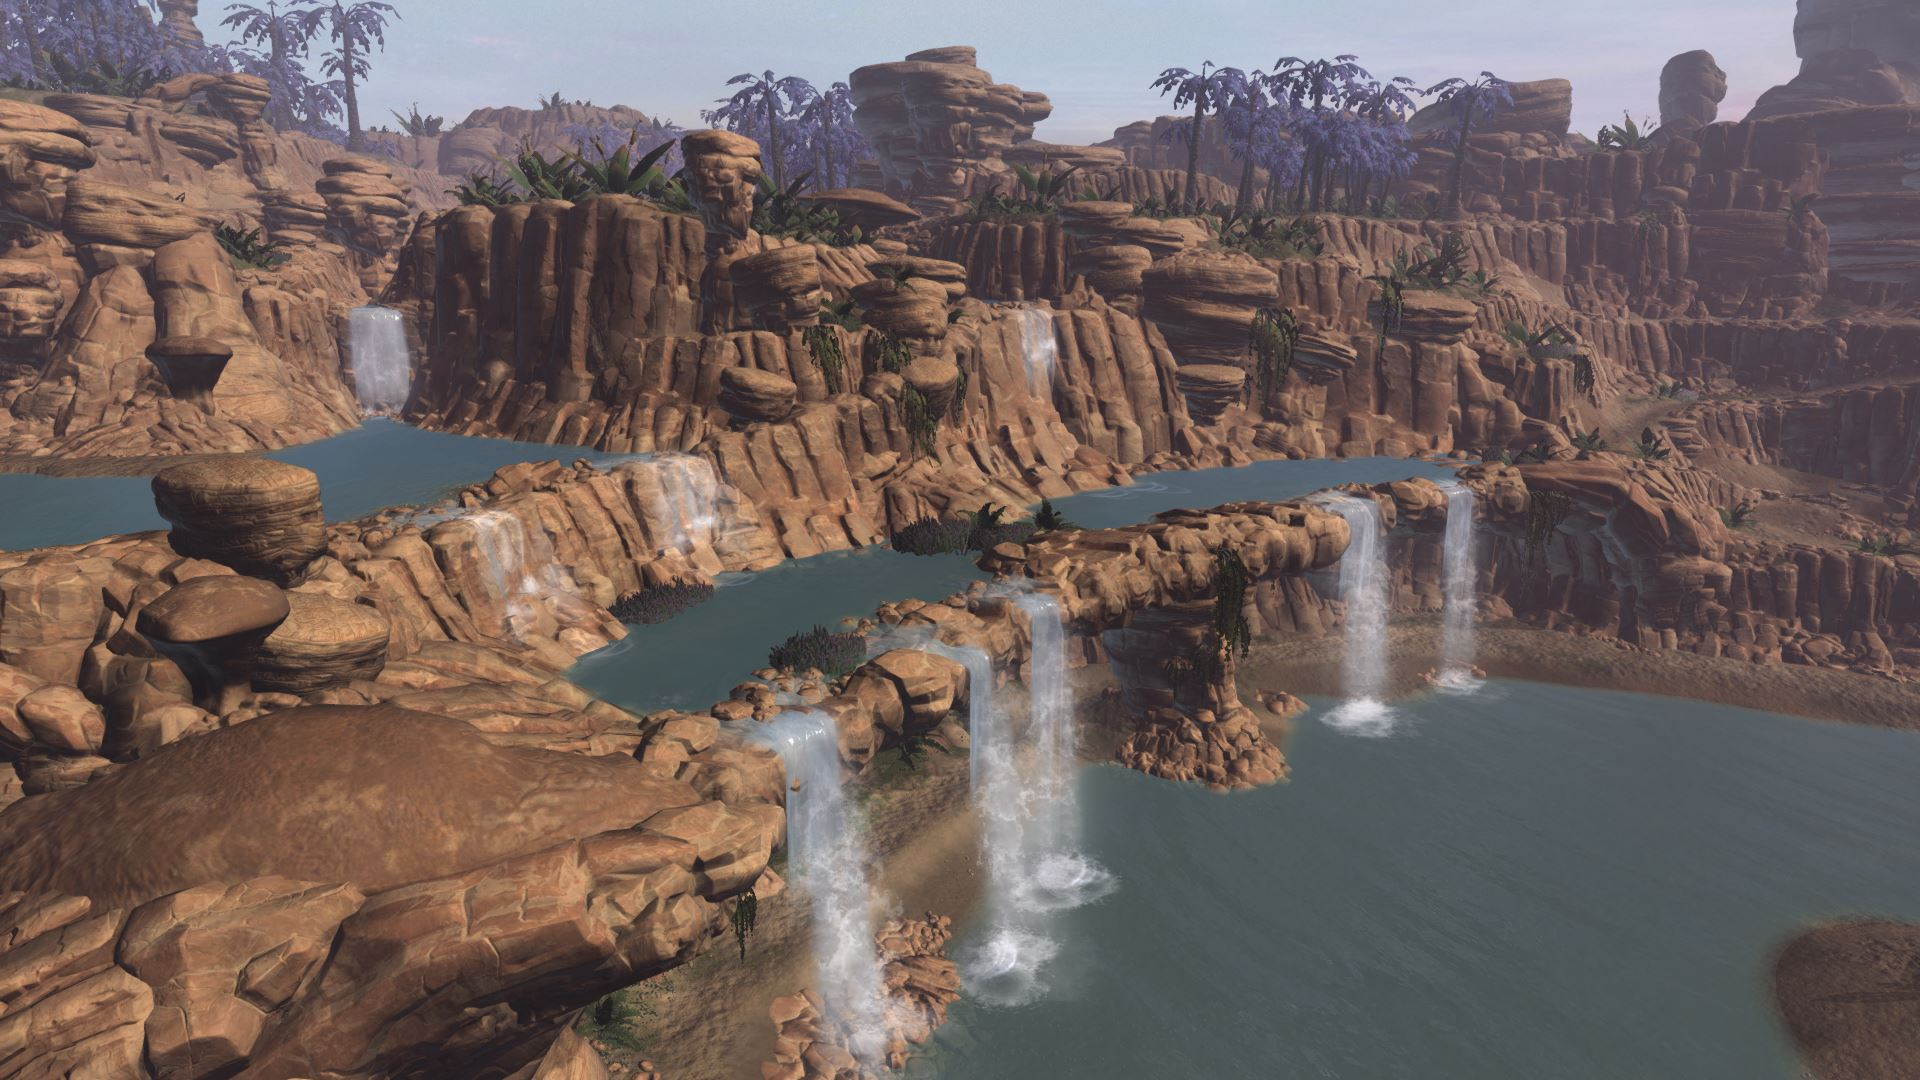 Some screenshots from the upcoming SWTOR expansion EDuXxPgX4AEg7iK?format=jpg&name=large